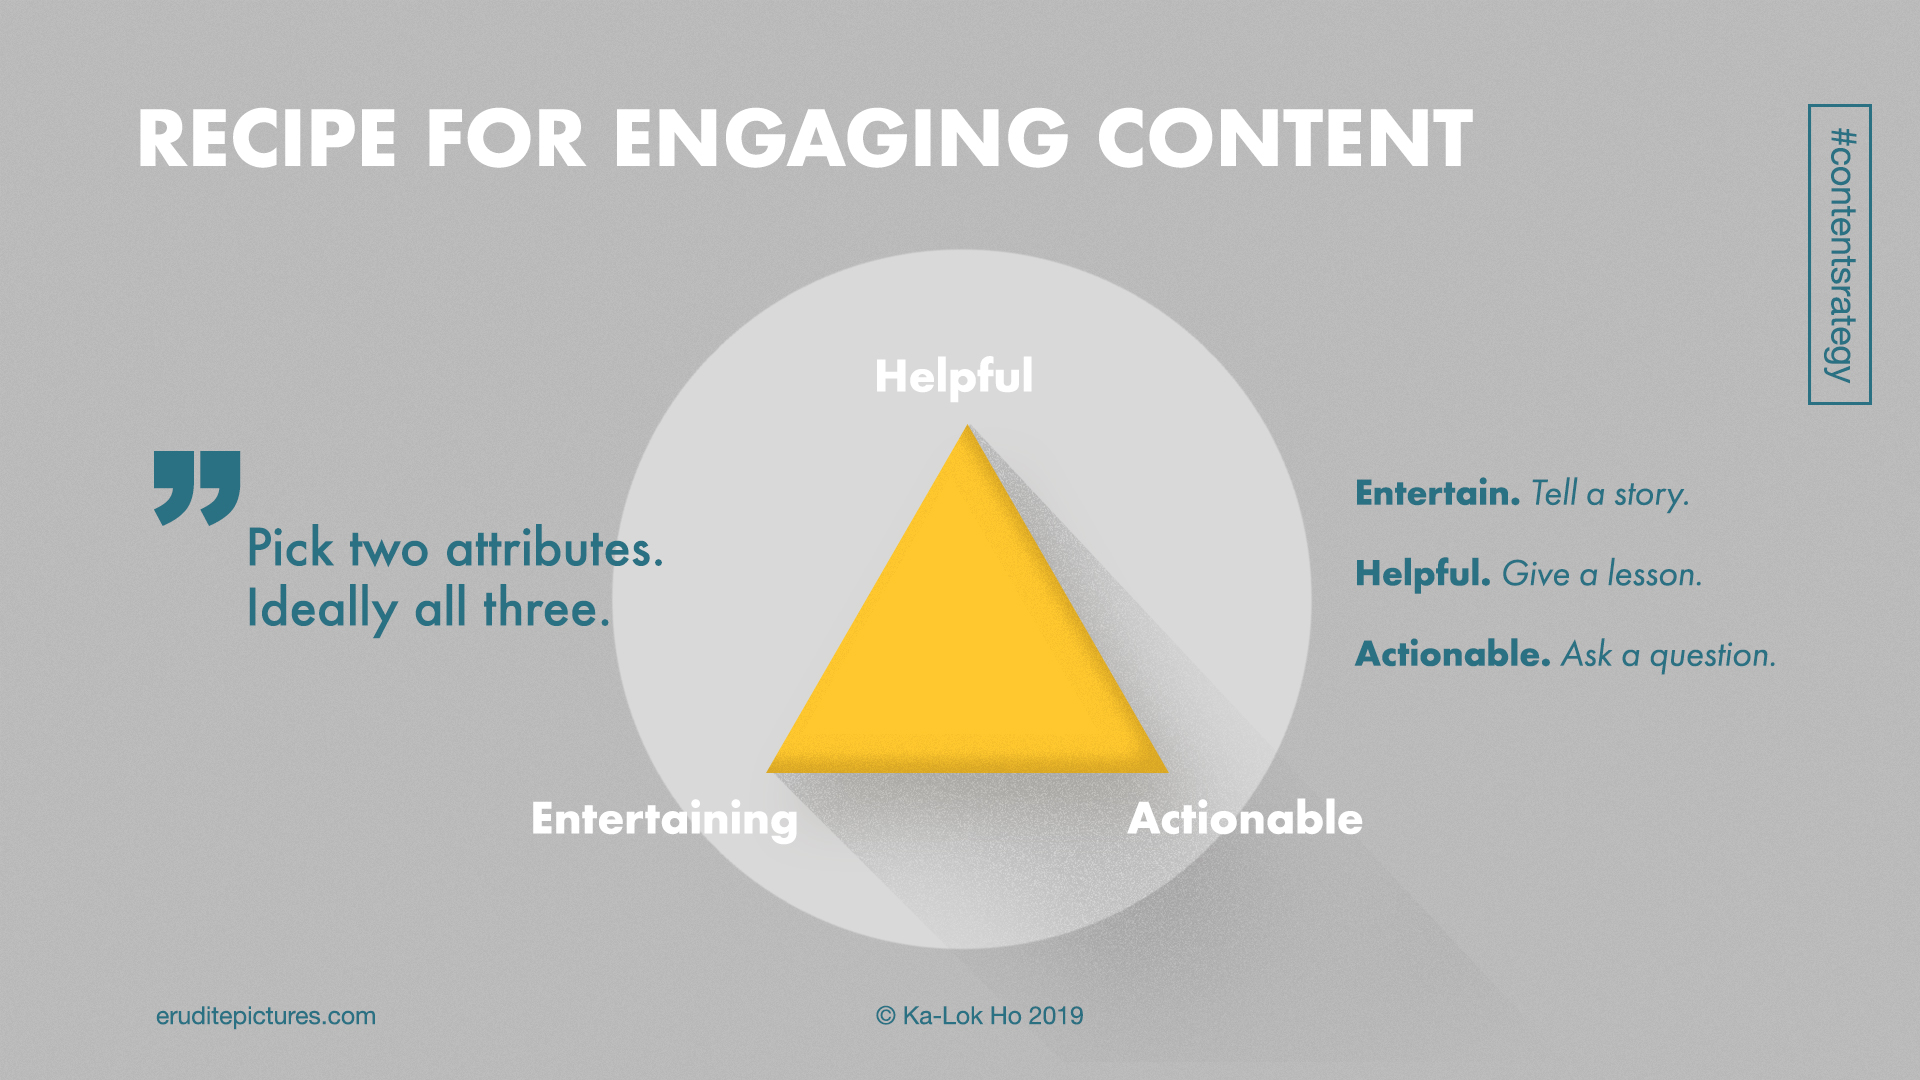 How to create engaging content framework